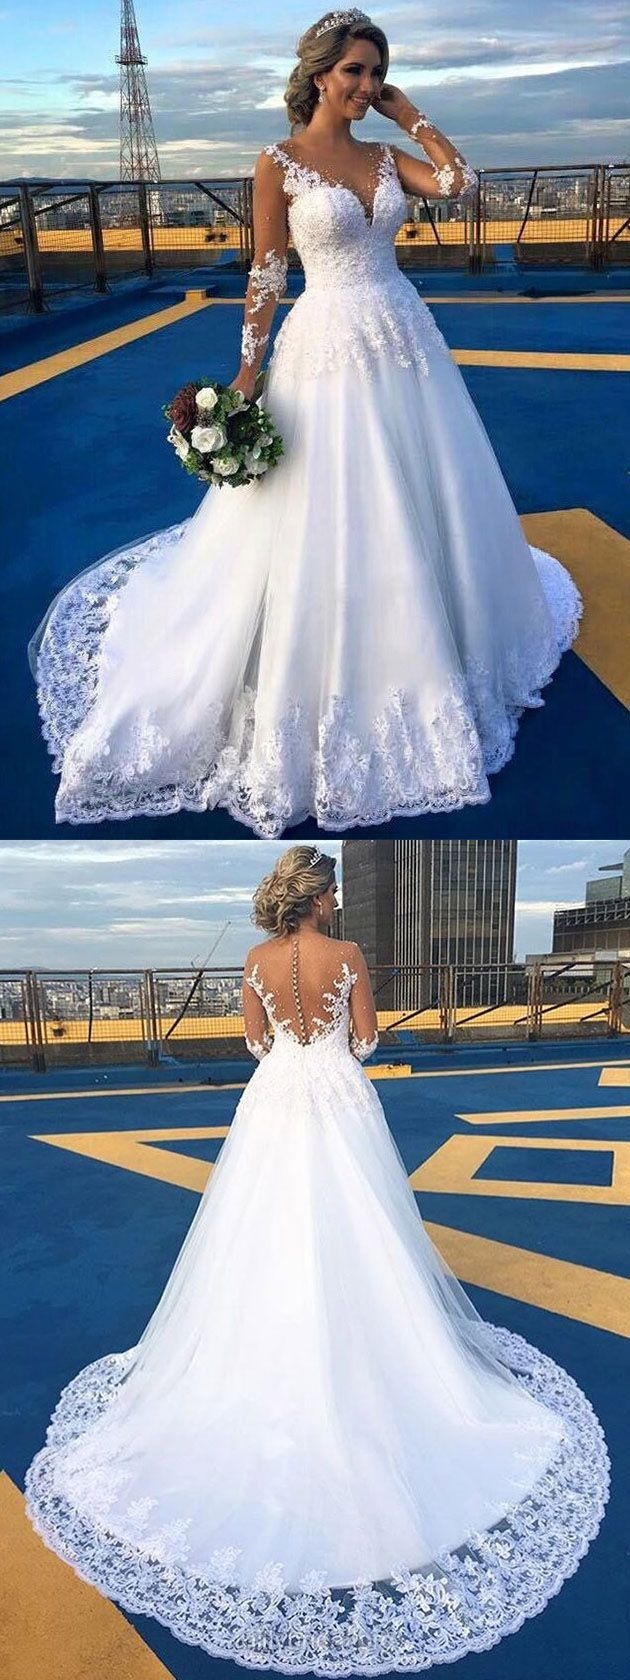 Modest long sleeve wedding gown  Lace Wedding Dresses Long Sleeve White Bridal Gowns AlineModest